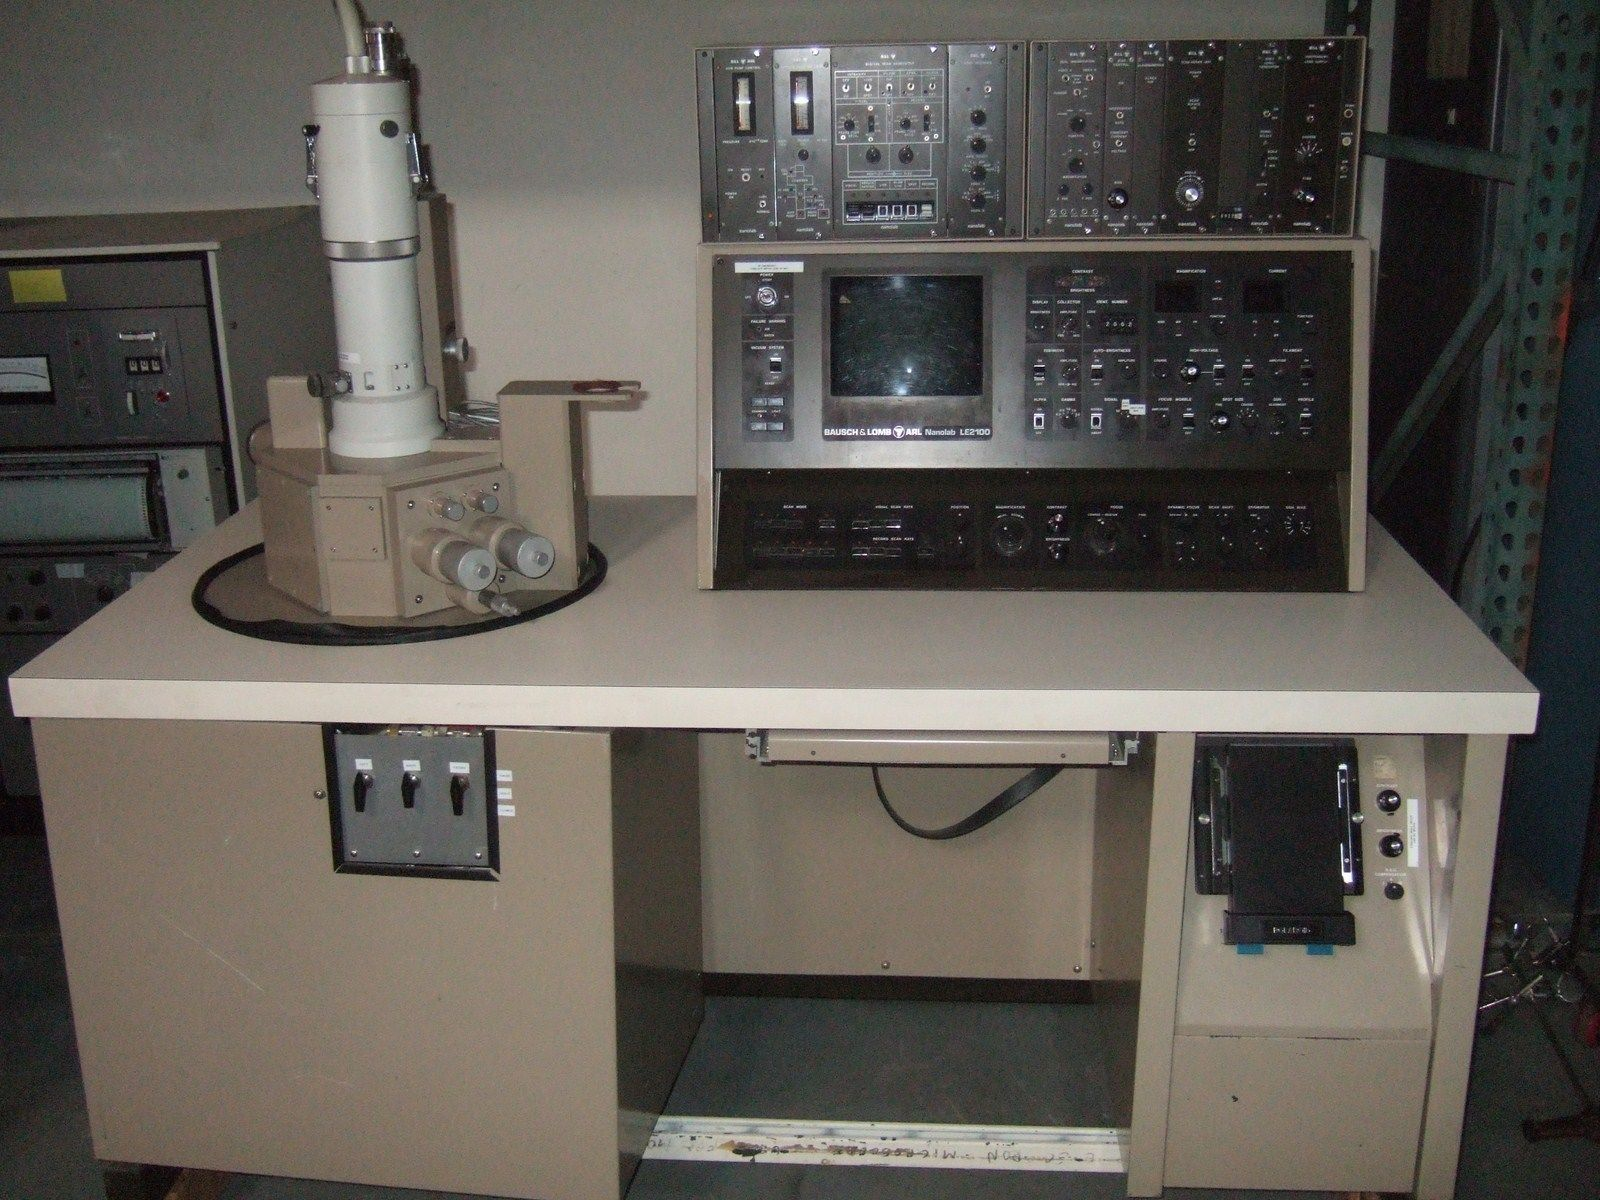 Bausch & Lomb LE 2100 Nanolab SEM Scanning Electron Microscope